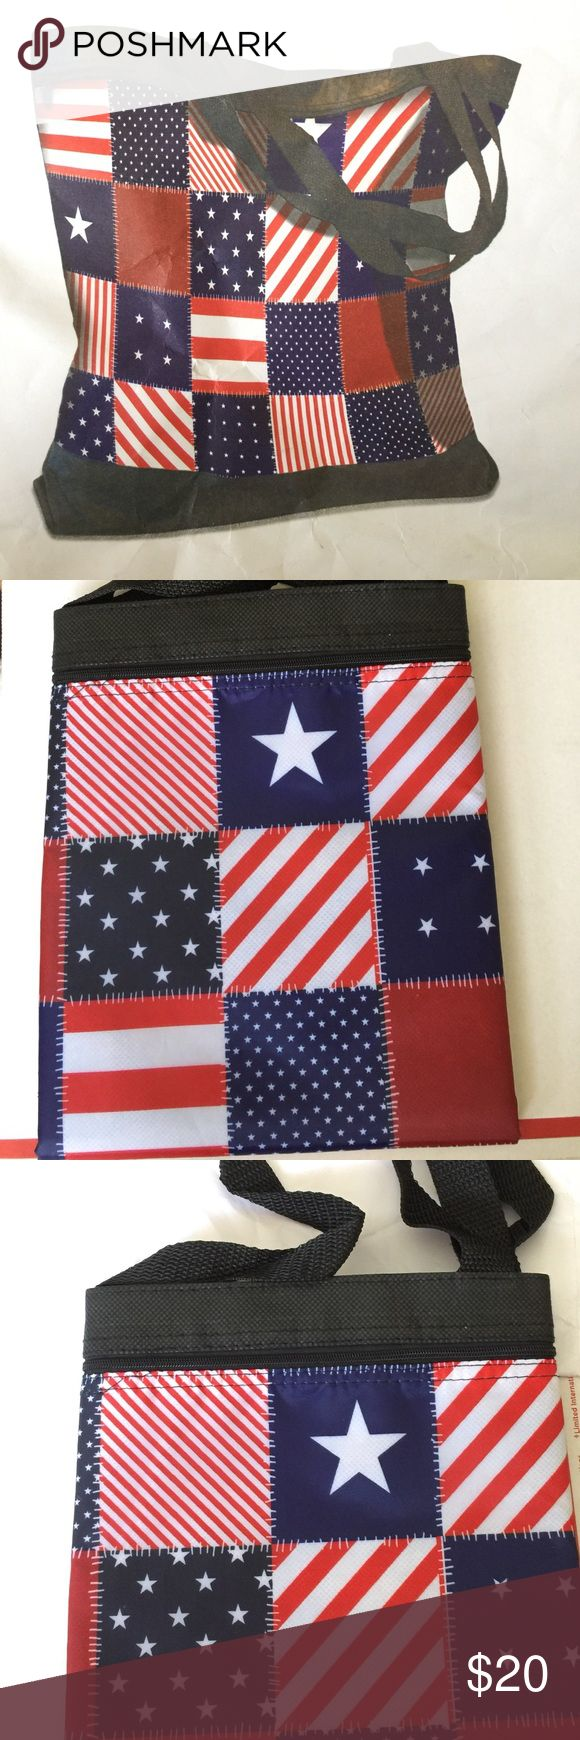 """HELP VETS 🇺🇸 PATRIOTIC TOTE BAG BRAND NEW 🇺🇸 Show your Patriotism with this 🇺🇸 patriotic patchwork totebag. Back side is solid black. Large Size - 16.5"""" wide x 15.5"""" long x 4""""  (Tote Shown Unfolded in Pic #1) Shoulder straps approximately 10"""" drop. Zips totally closed in complete front storage pouch and Velcro closures for more storage inside. Holds a Lot! Great for the beach⛱ or shopping 🛒 All proceeds donated to Veterans of America 🇺🇸 USA 🇺🇸 Swim"""